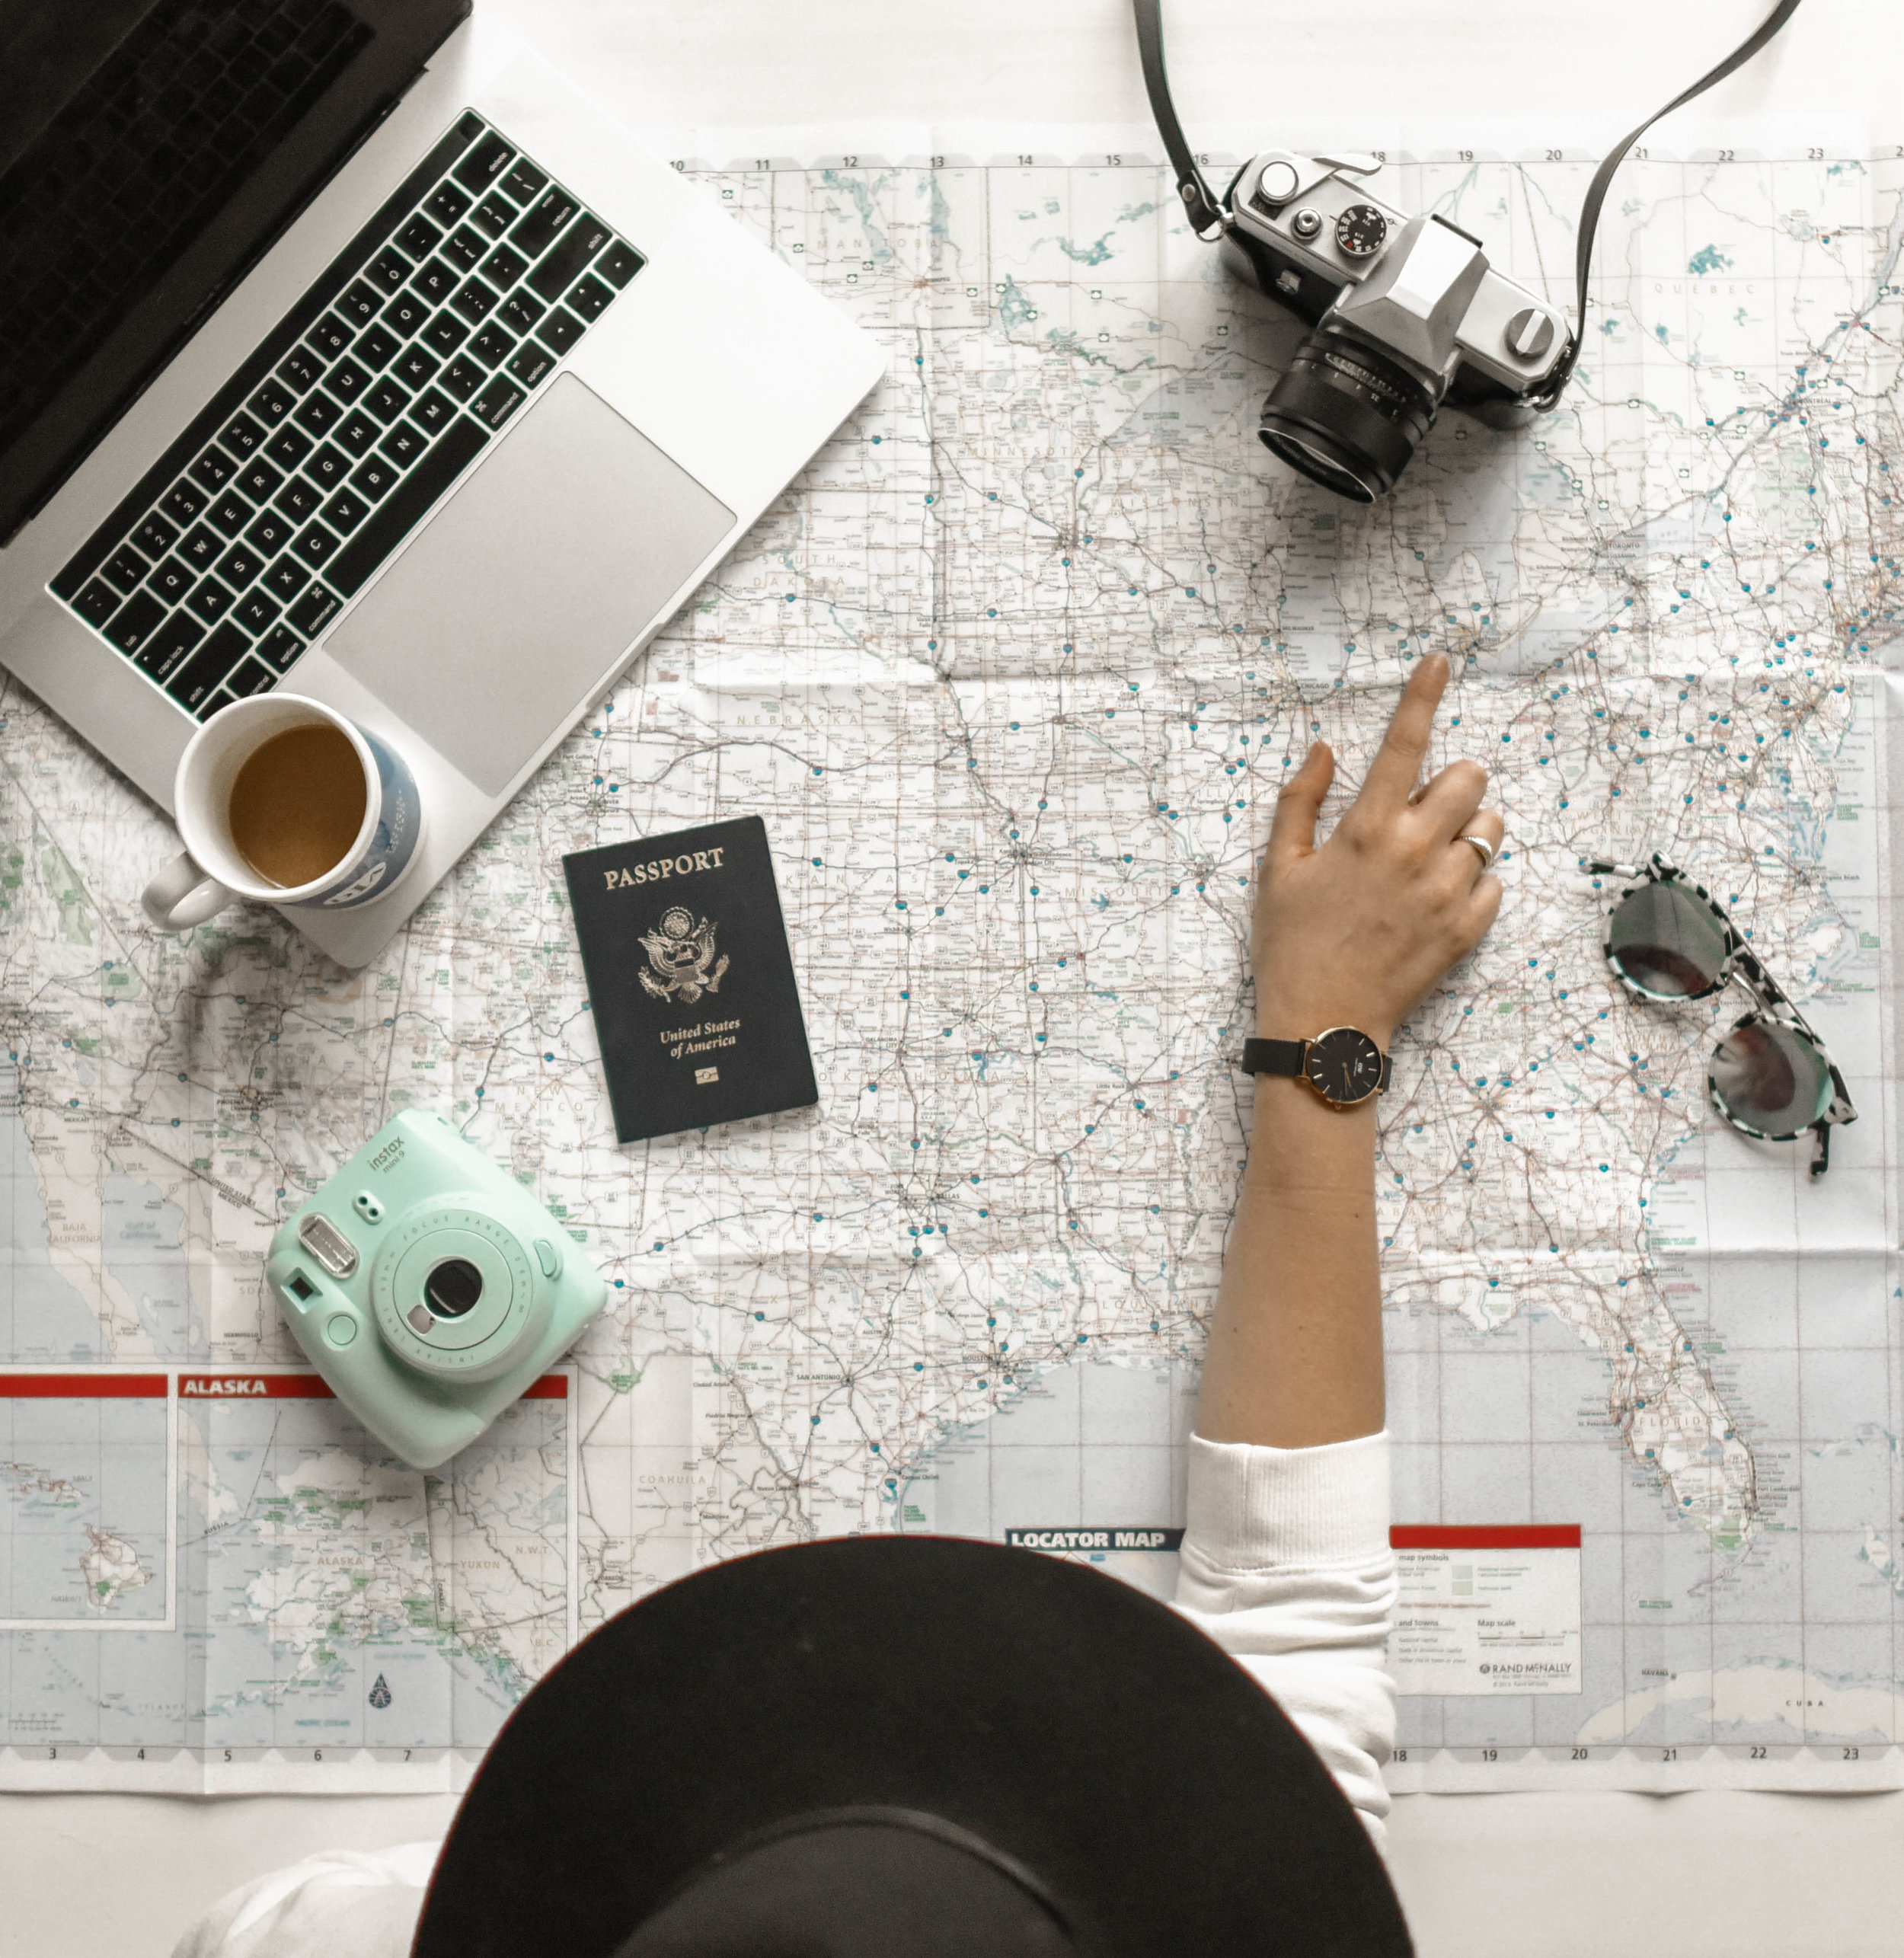 Travel Insurance     Everyone aspires a well-deserved travel! However, travelling has some inherent risks - flight delays, loss of belongings, and unforseen medical expenses. Buy Travel Insurance so that your trips will be worry-free.